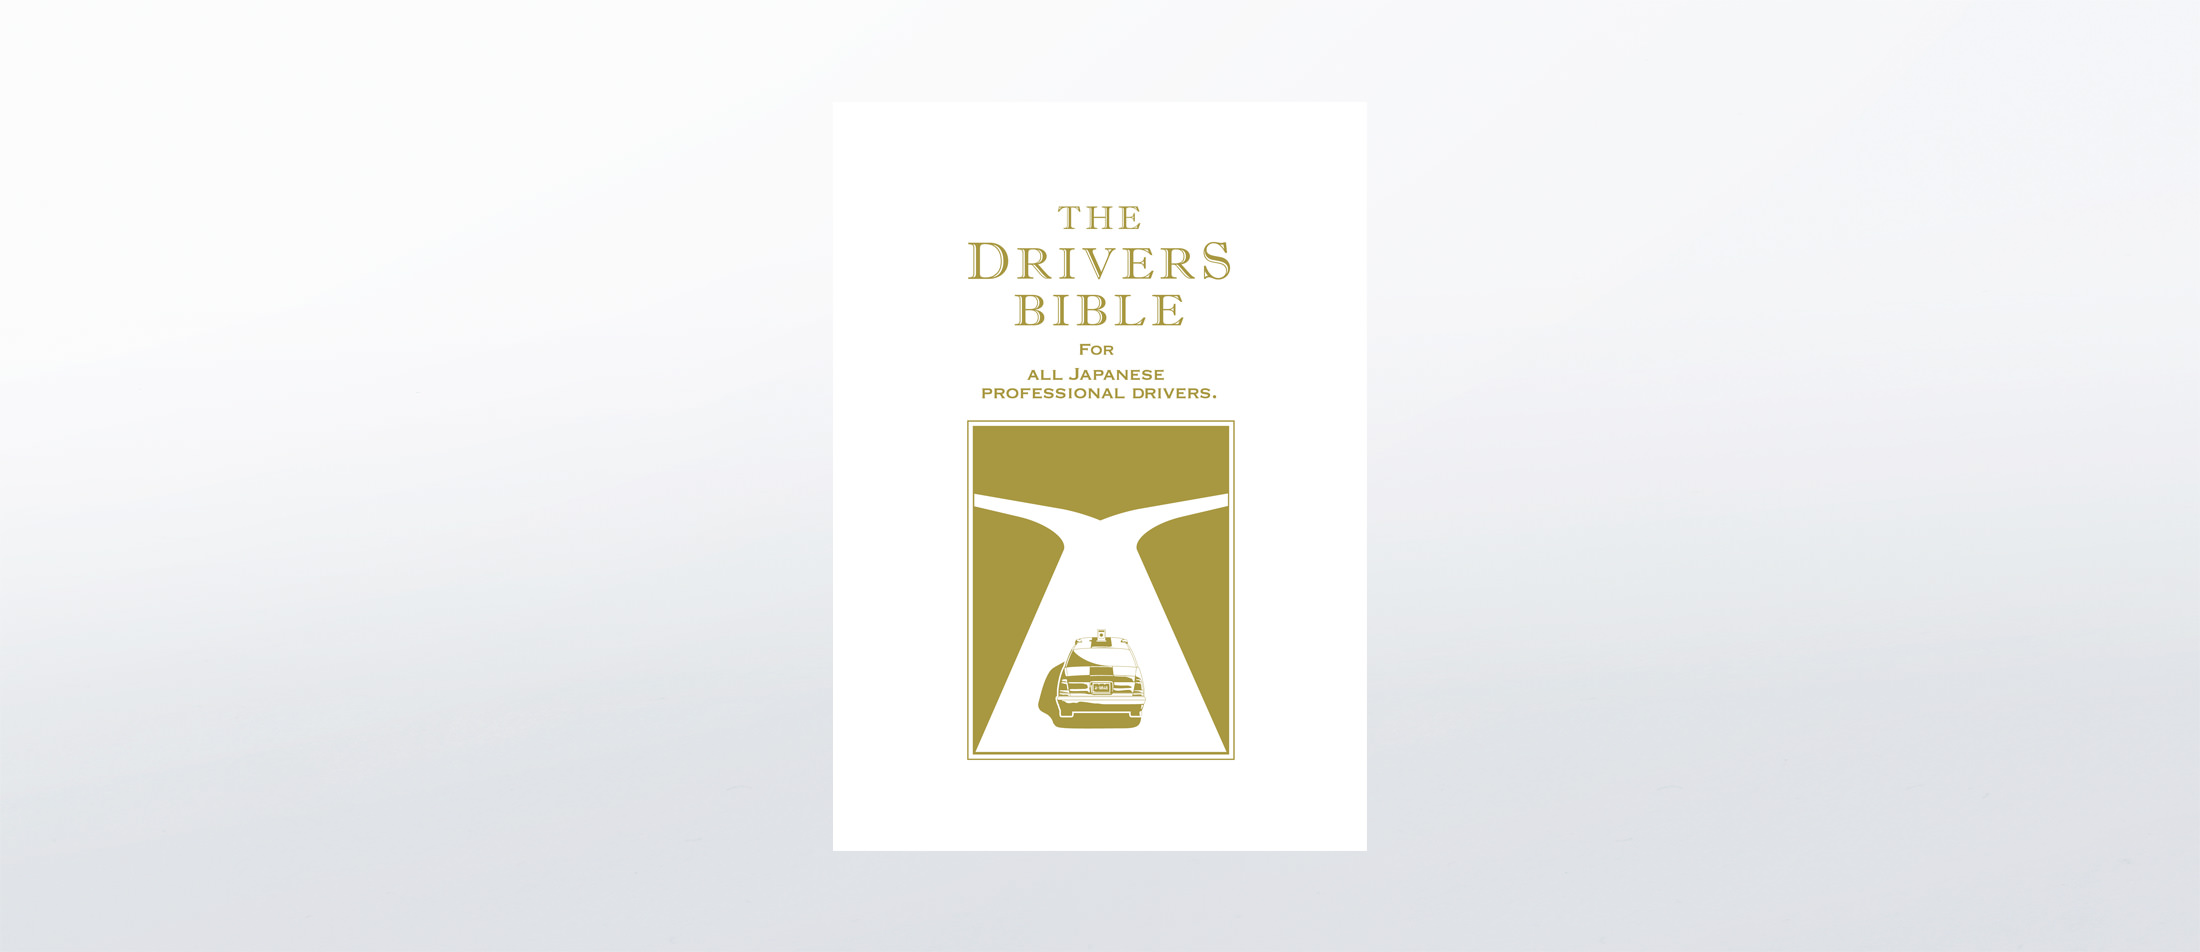 THE DRIVERS BIBLE